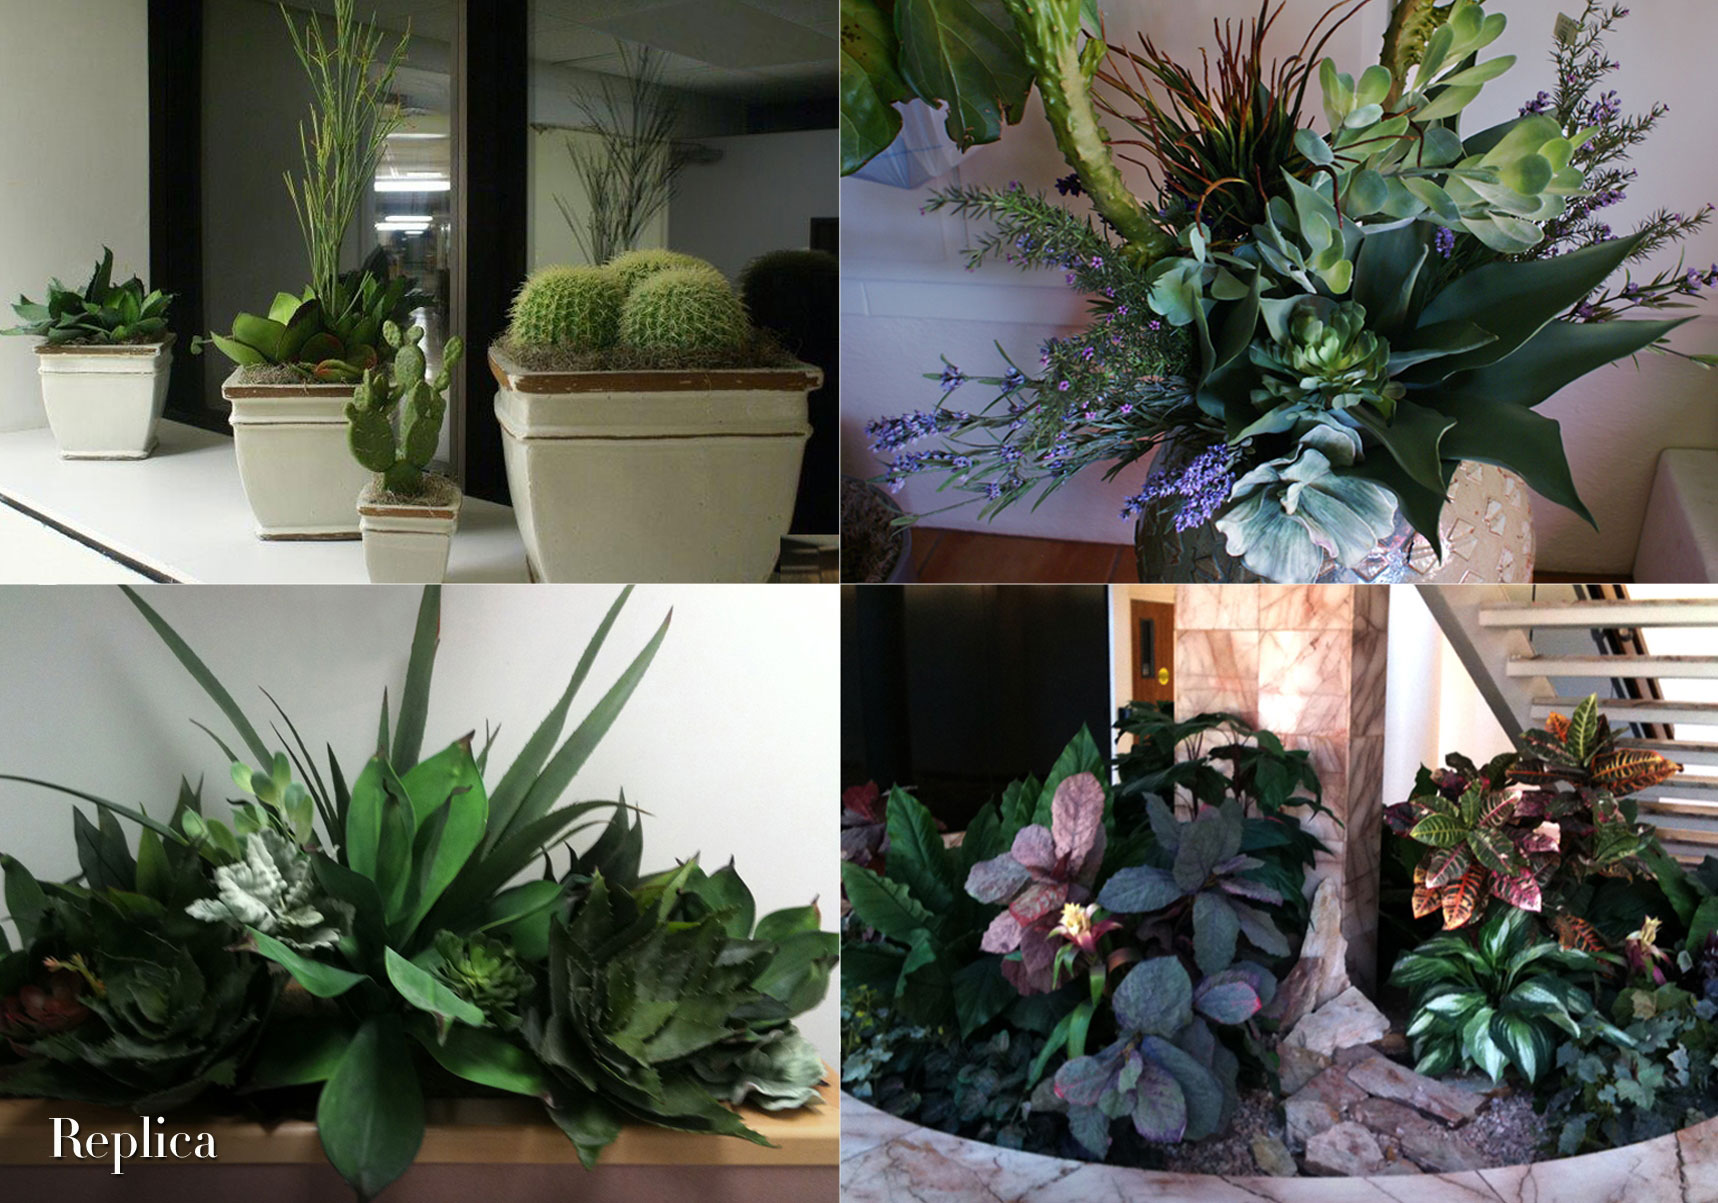 Special projects lulu pokinghorn the plant lady for Indoor plant maintenance